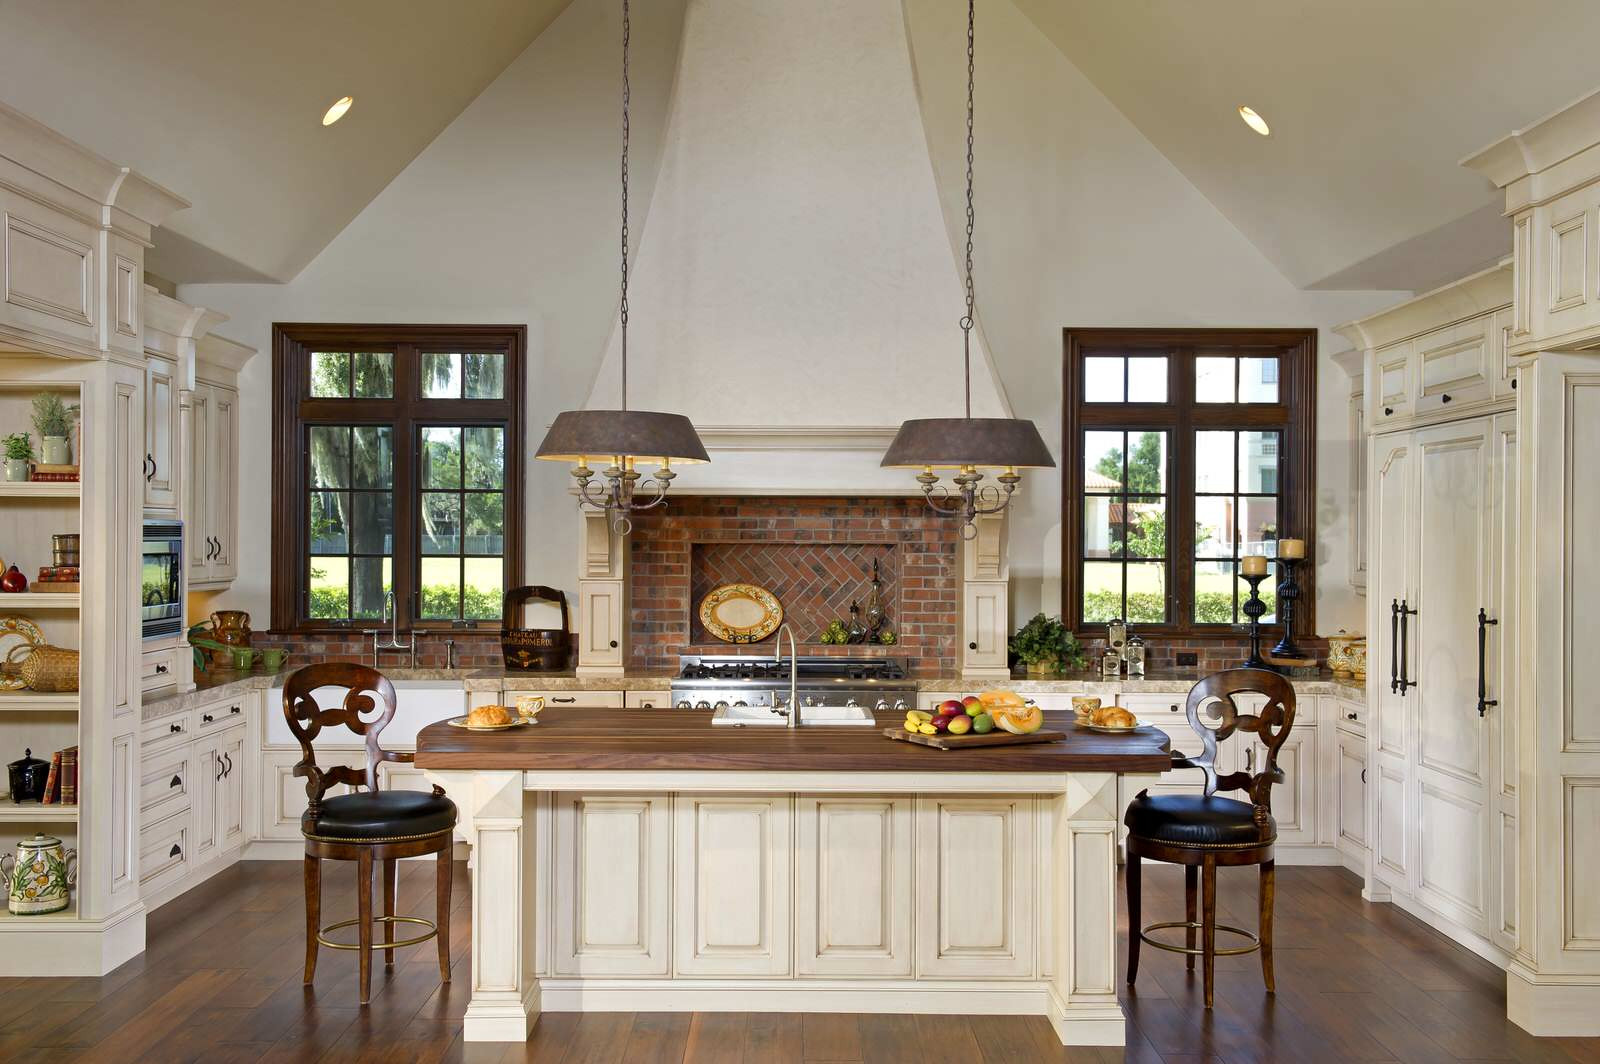 9 Most Fabulous Cream Kitchen Cabinets Designs You Must Know ...